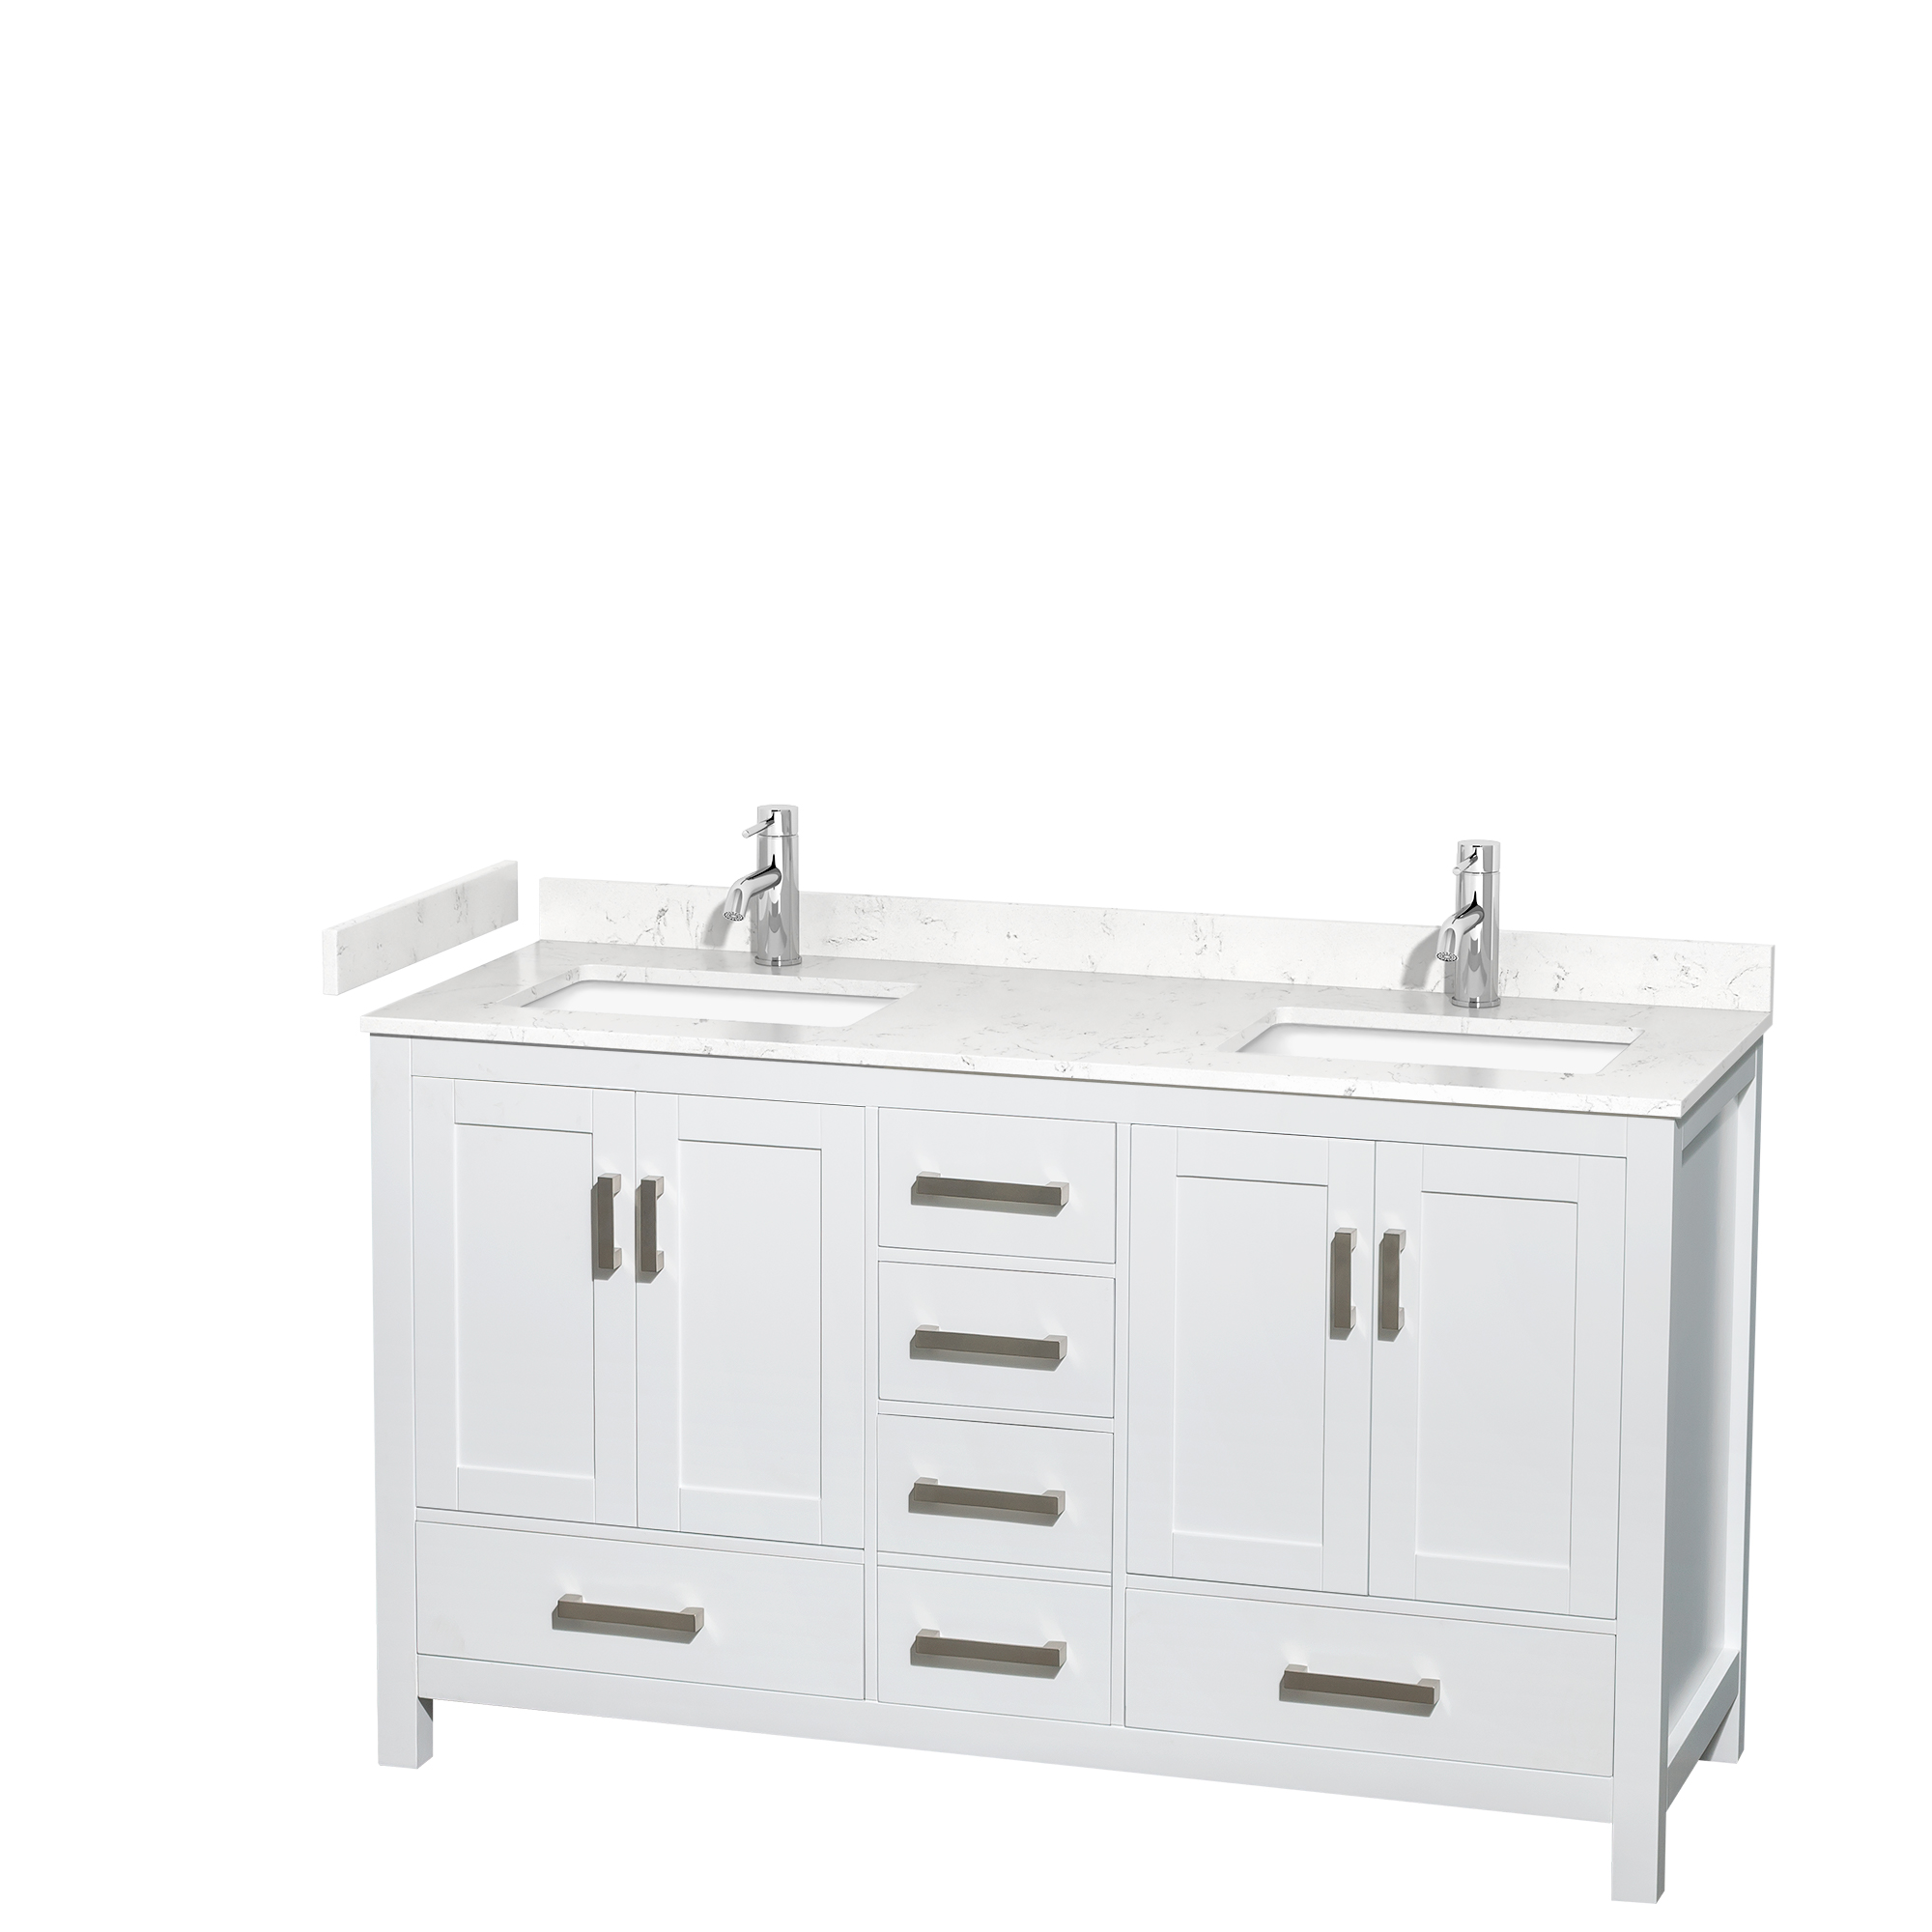 Sheffield 60 Double Bathroom Vanity White Beautiful Bathroom Furniture For Every Home Wyndham Collection